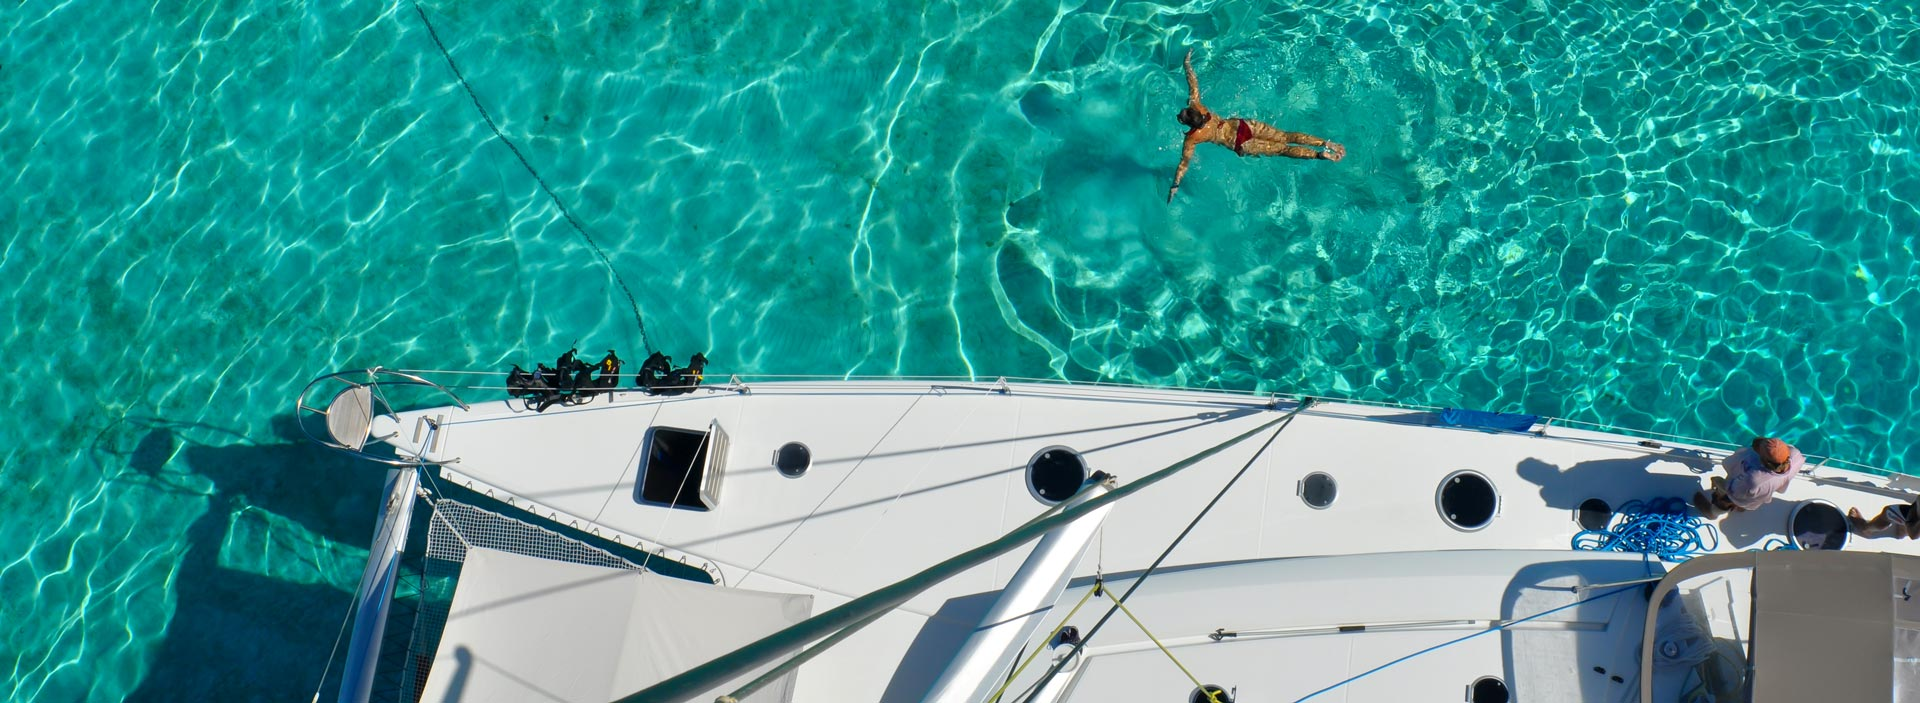 Luxury sailing with TradeWinds